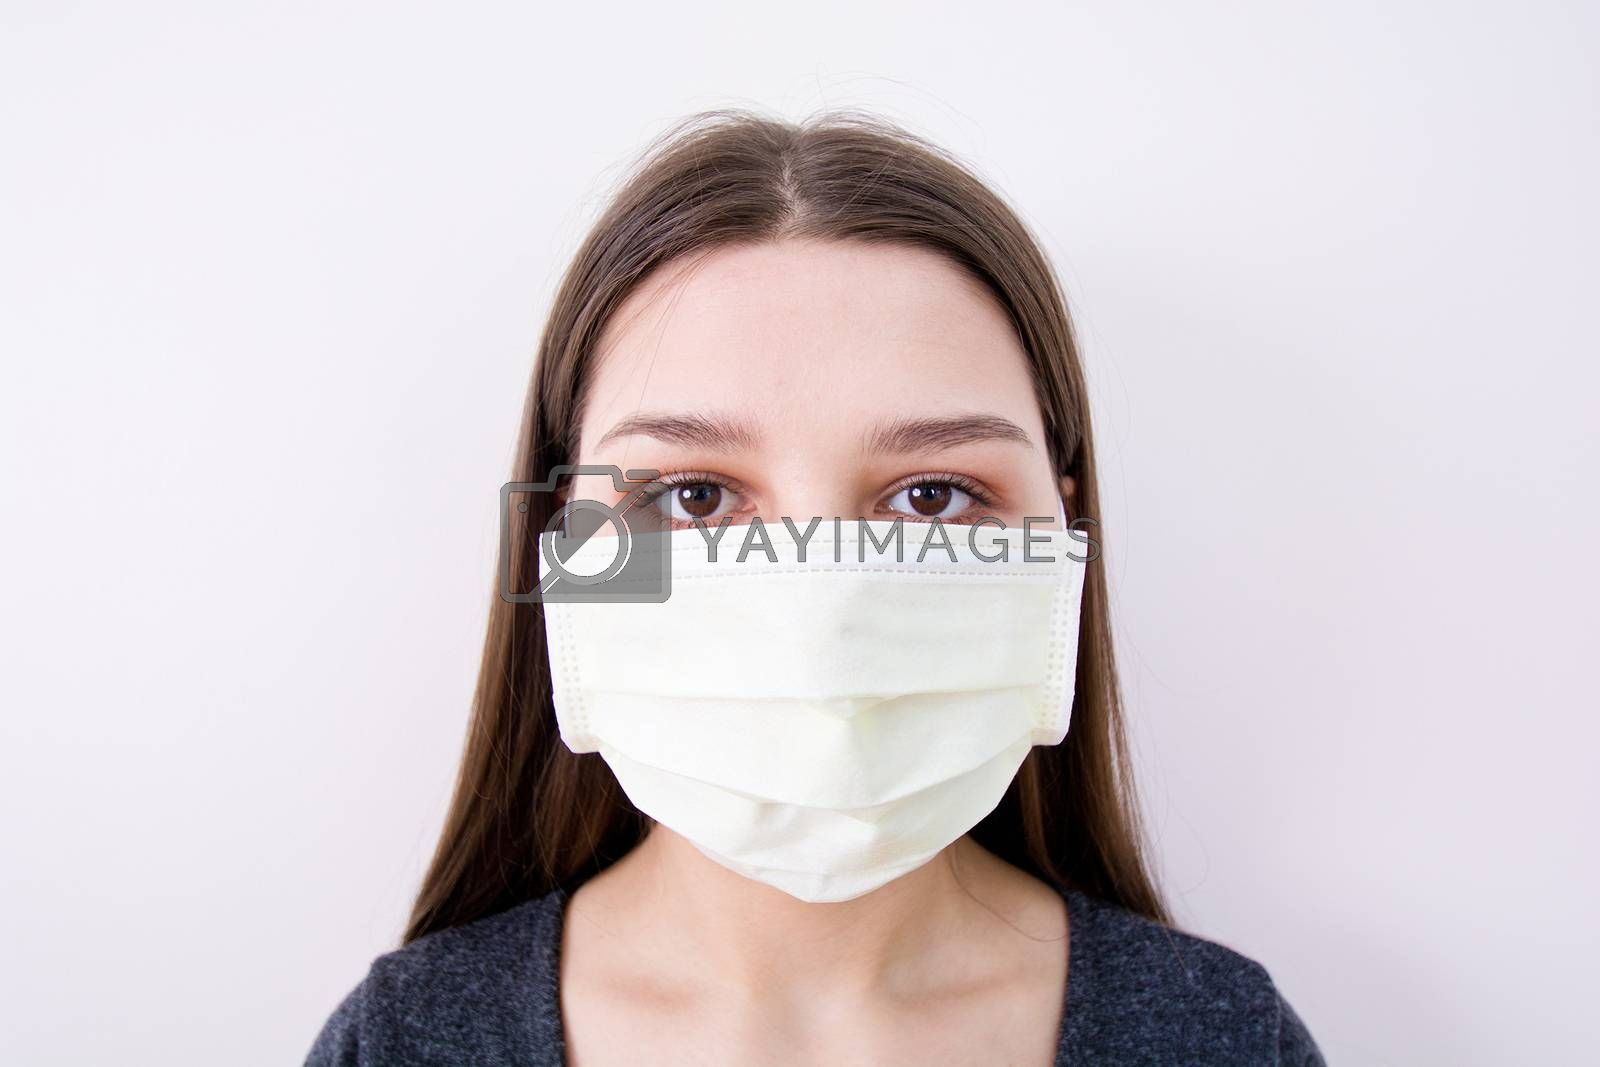 Young woman wears a face mask. Isolated image. Covid-19 concept.